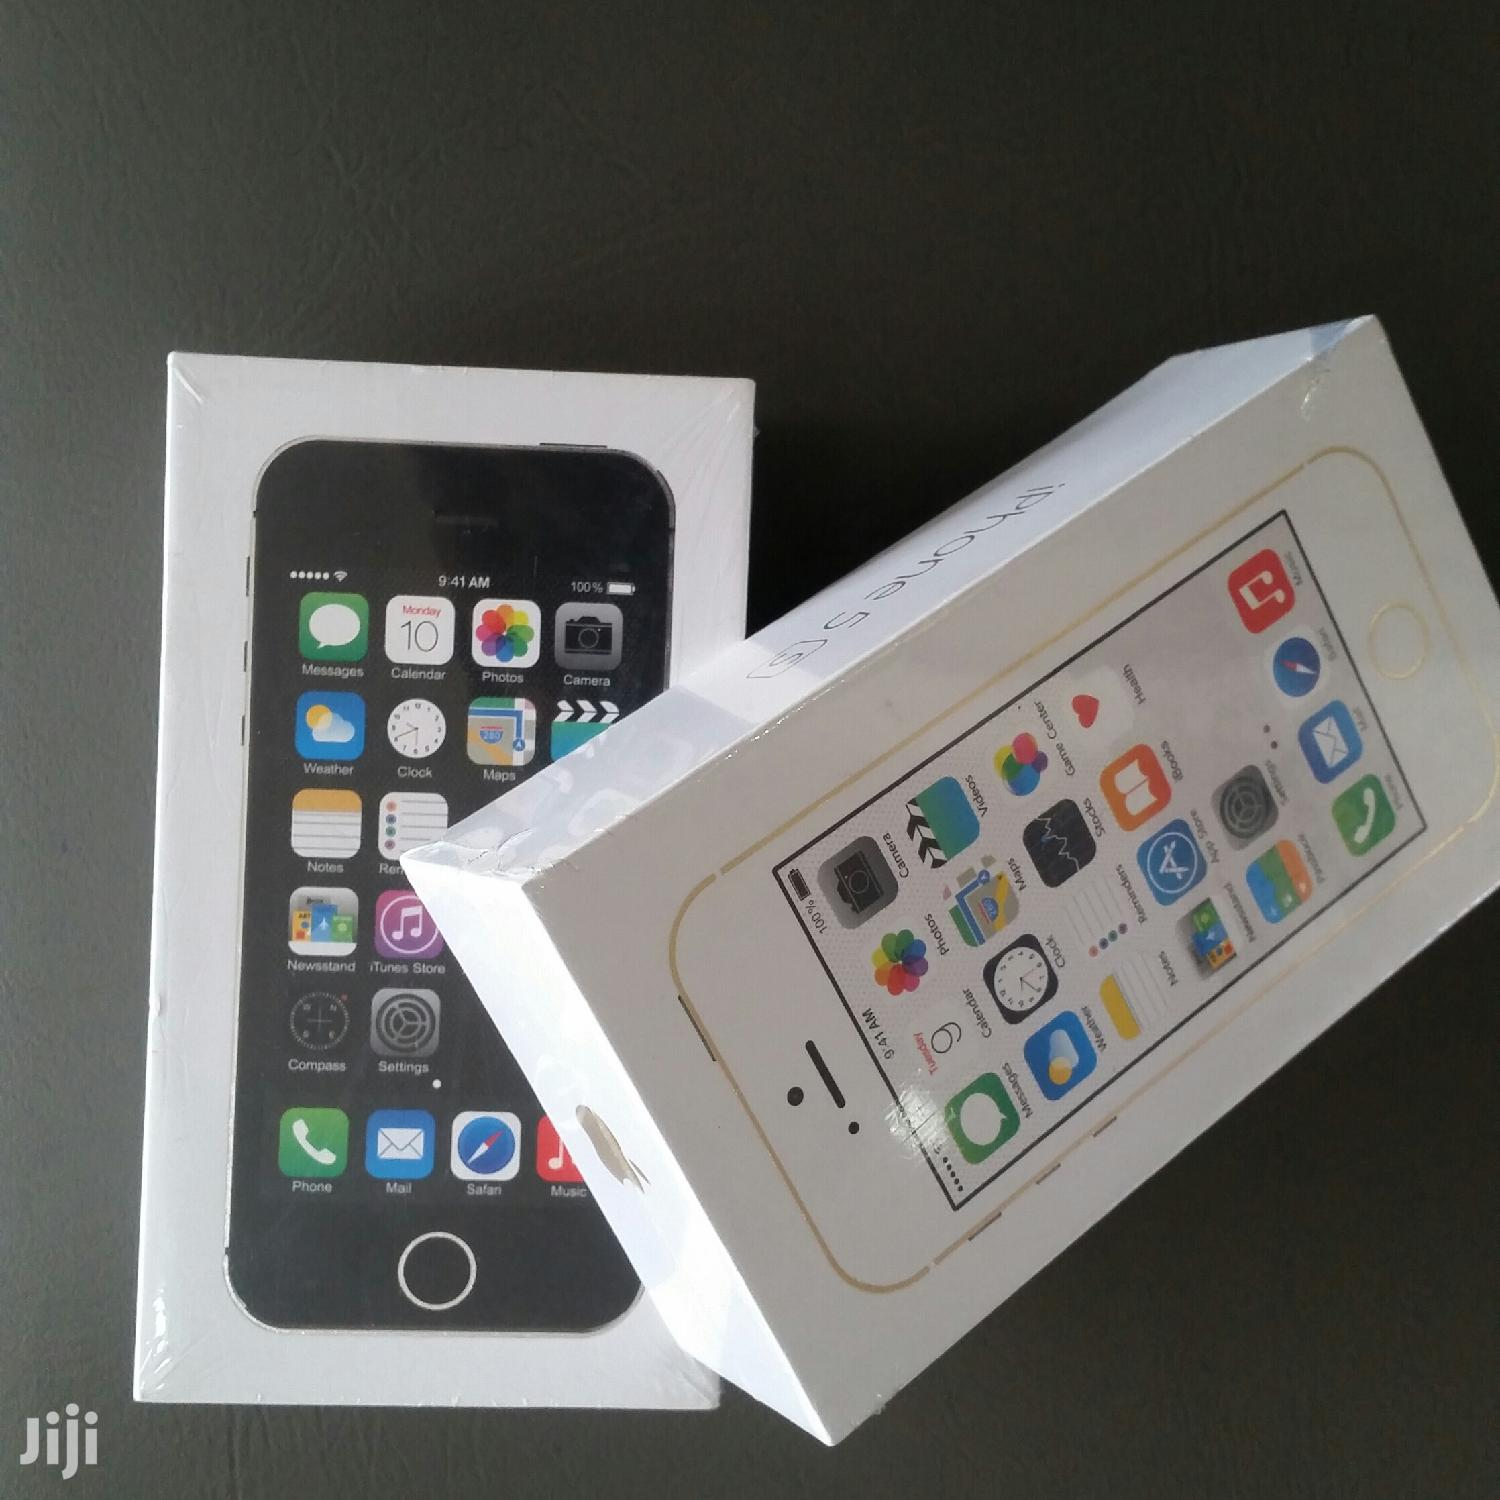 New Apple iPhone 5s 32 GB | Mobile Phones for sale in Kokomlemle, Greater Accra, Ghana